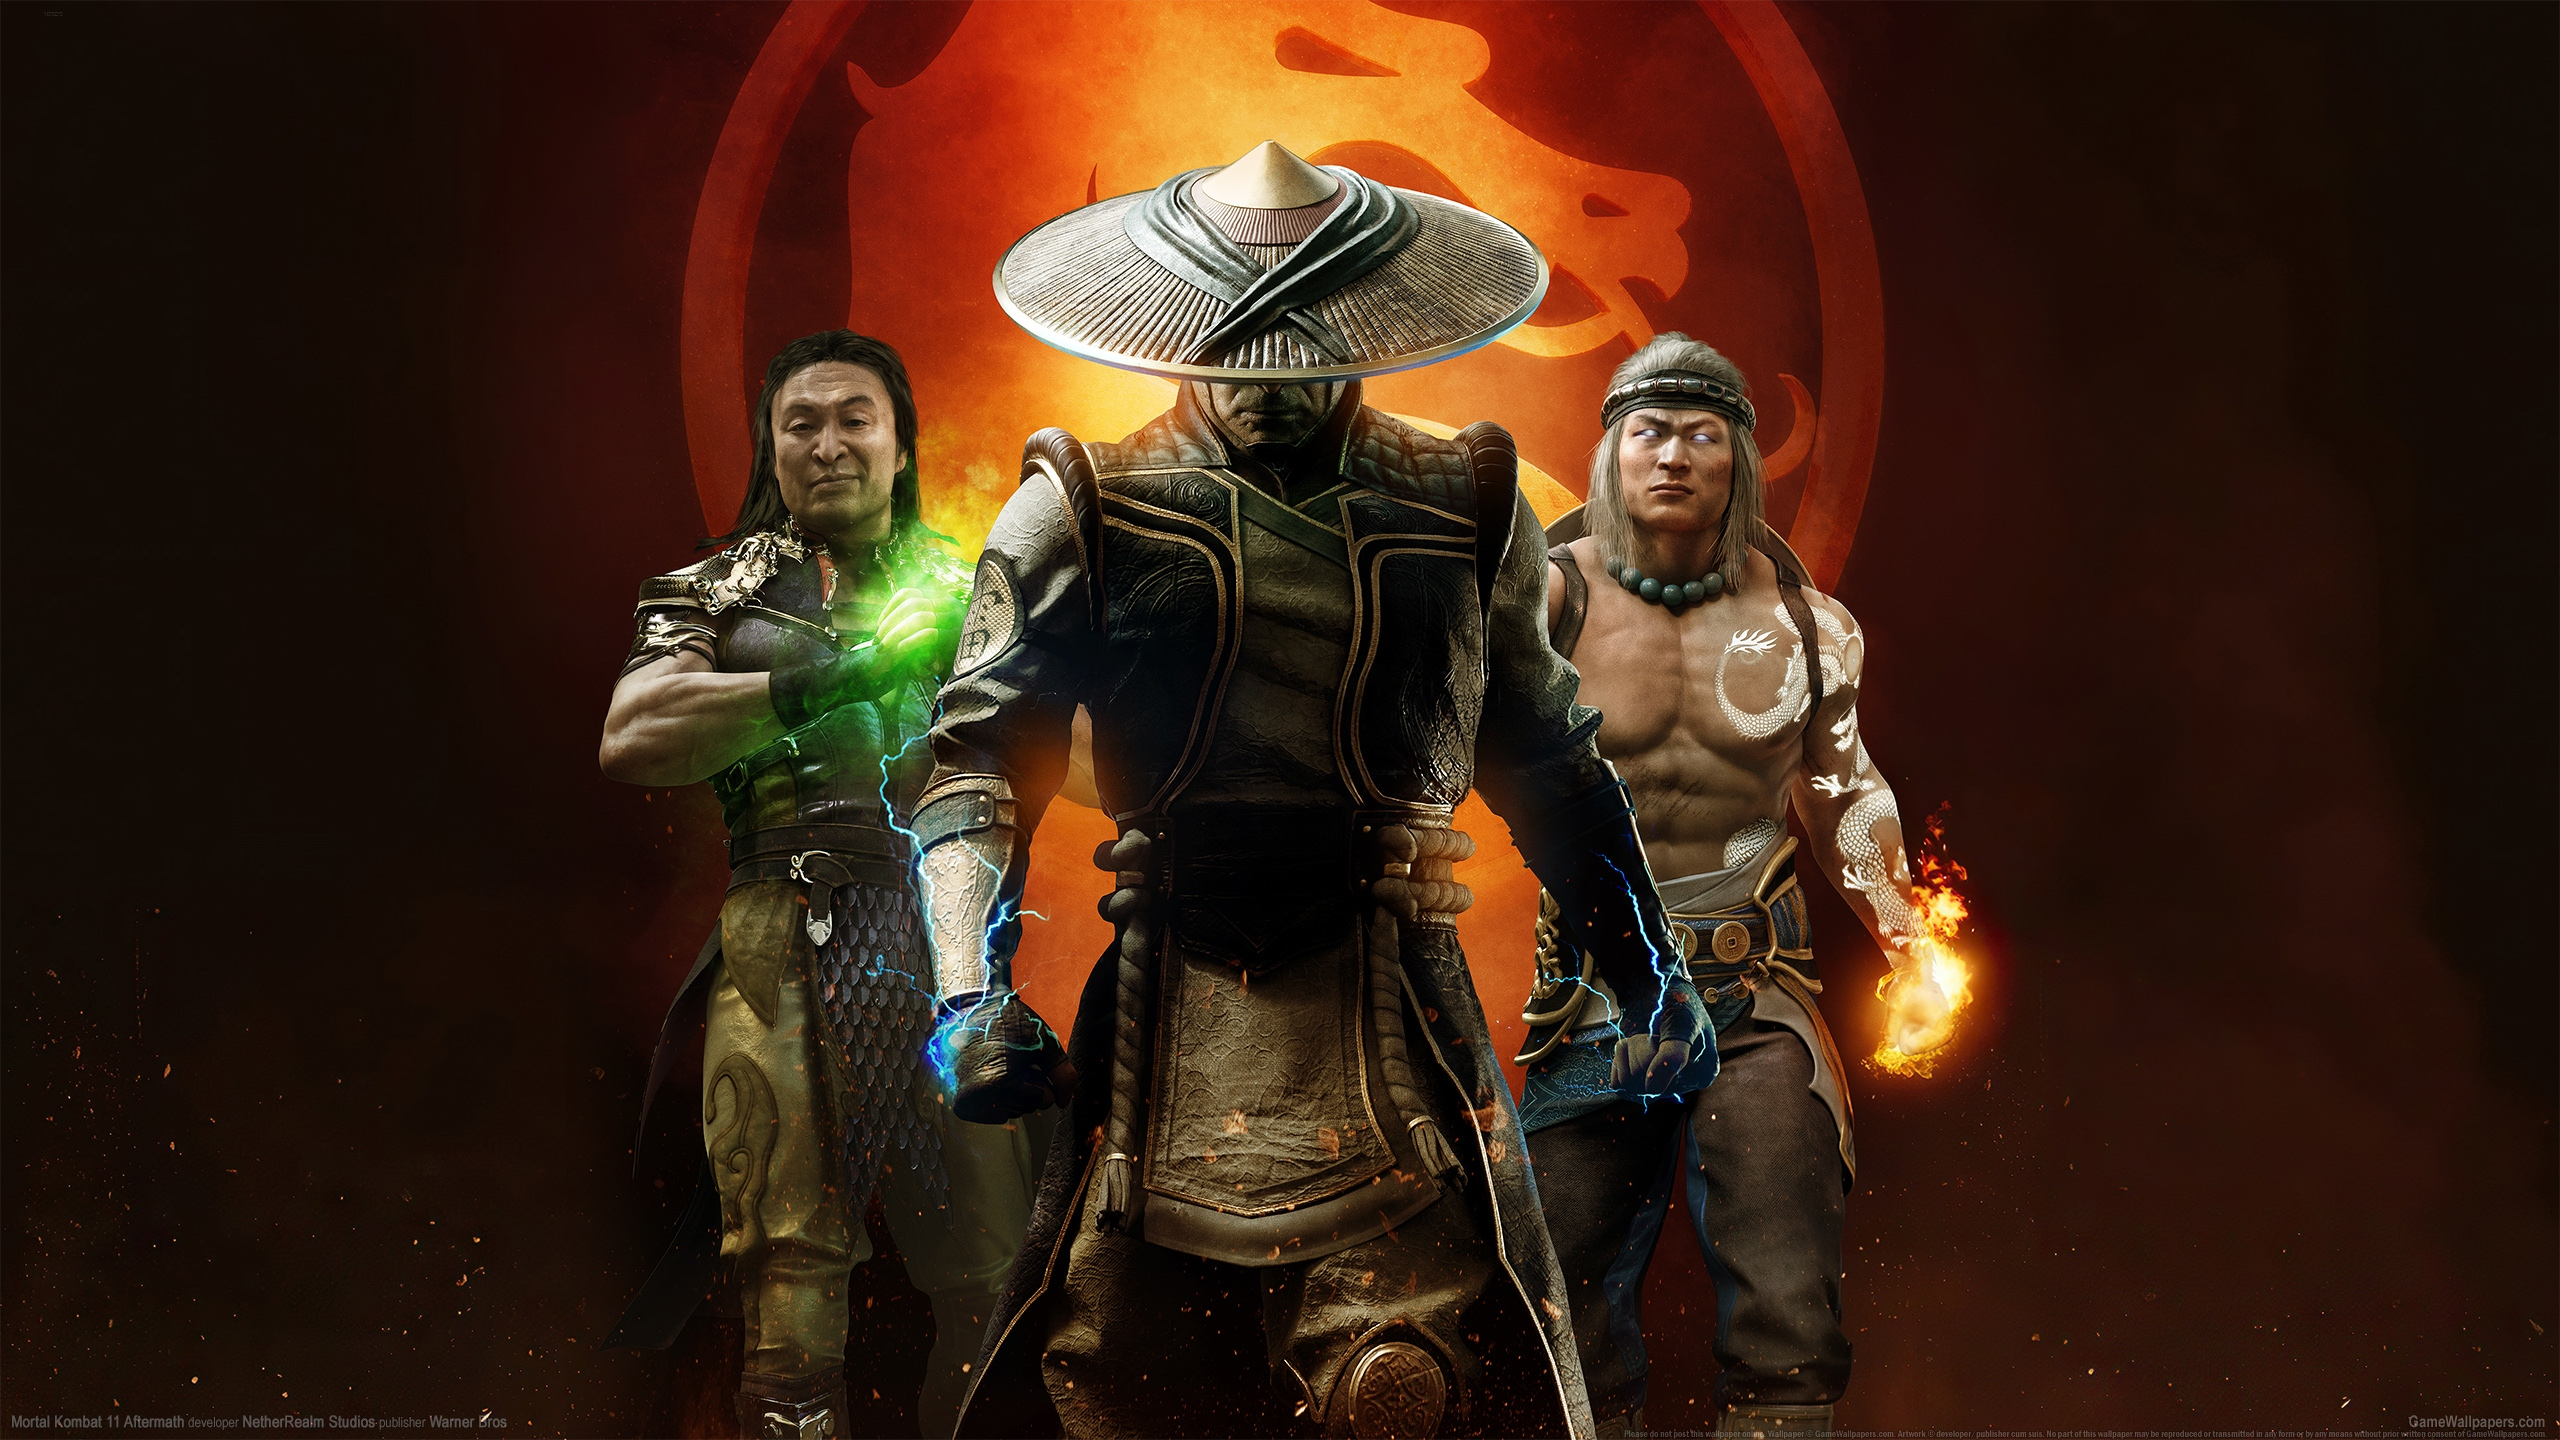 Mortal Kombat 11 Aftermath 2560x1440 wallpaper or background 01